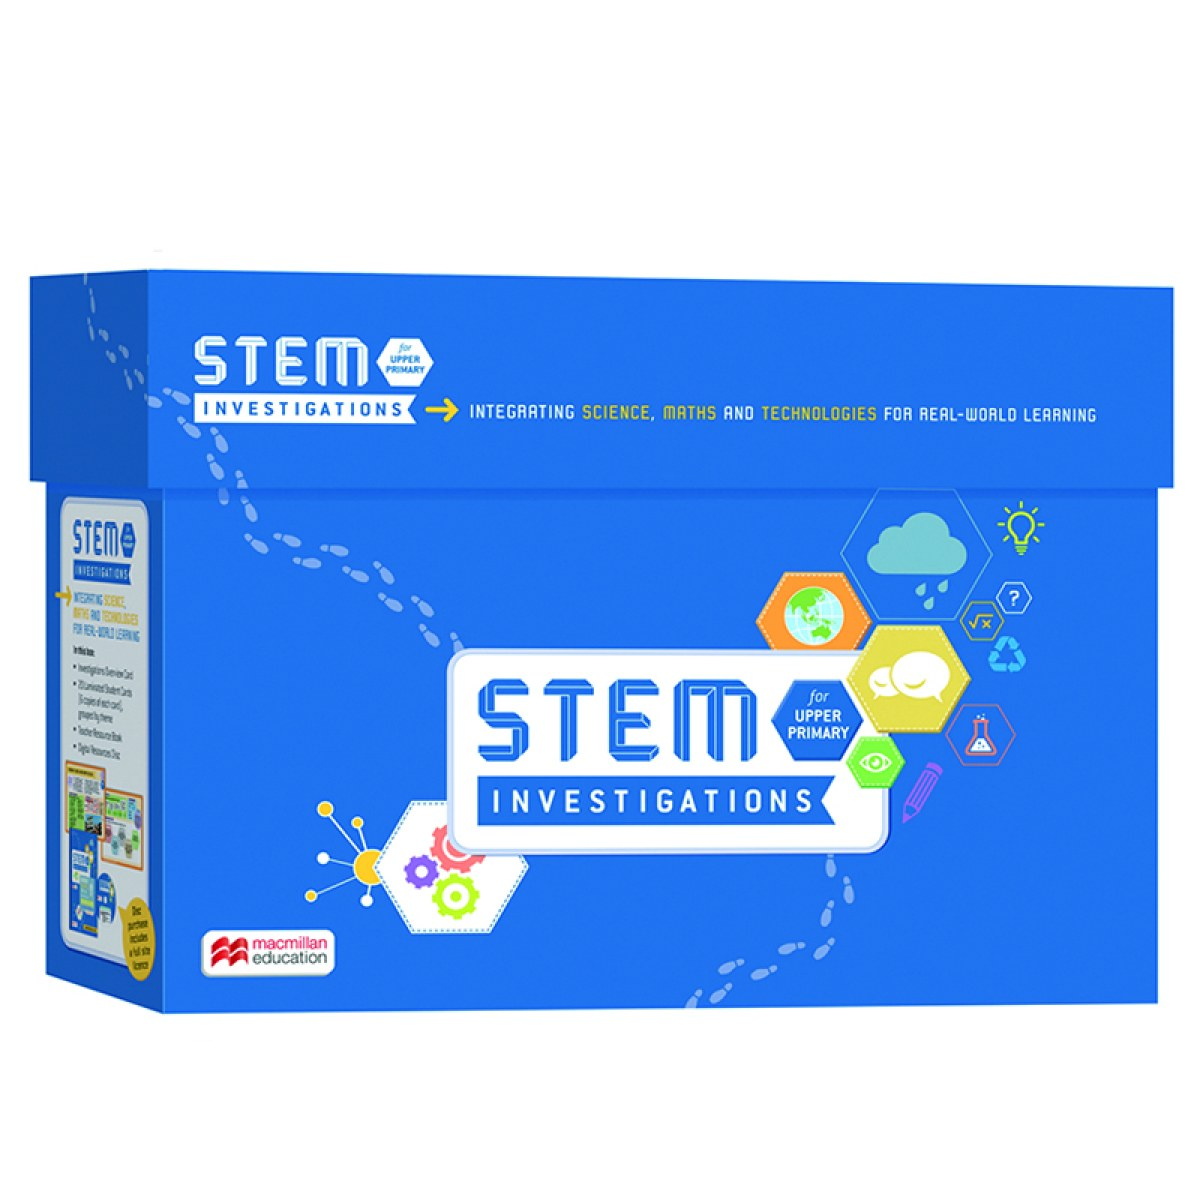 STEM INVESTIGATIONS FOR UPPER PRIMARY